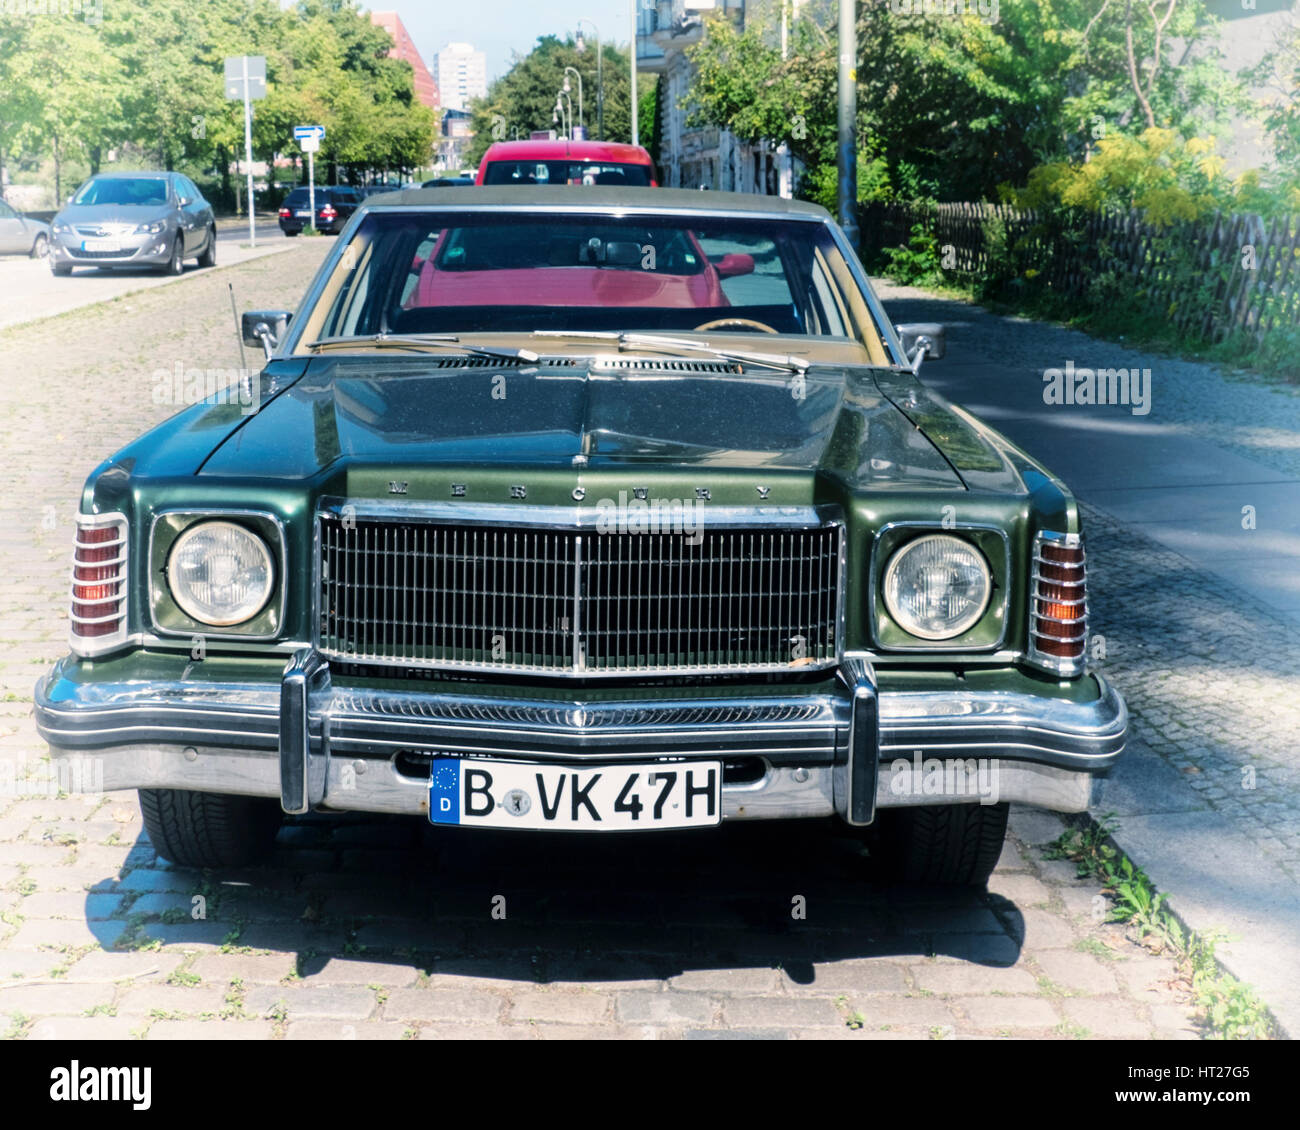 Classic green Ford Mercury Monarch automobile parked in a suburban street. Collectors vintage car. Collectible vehicle - Stock Image